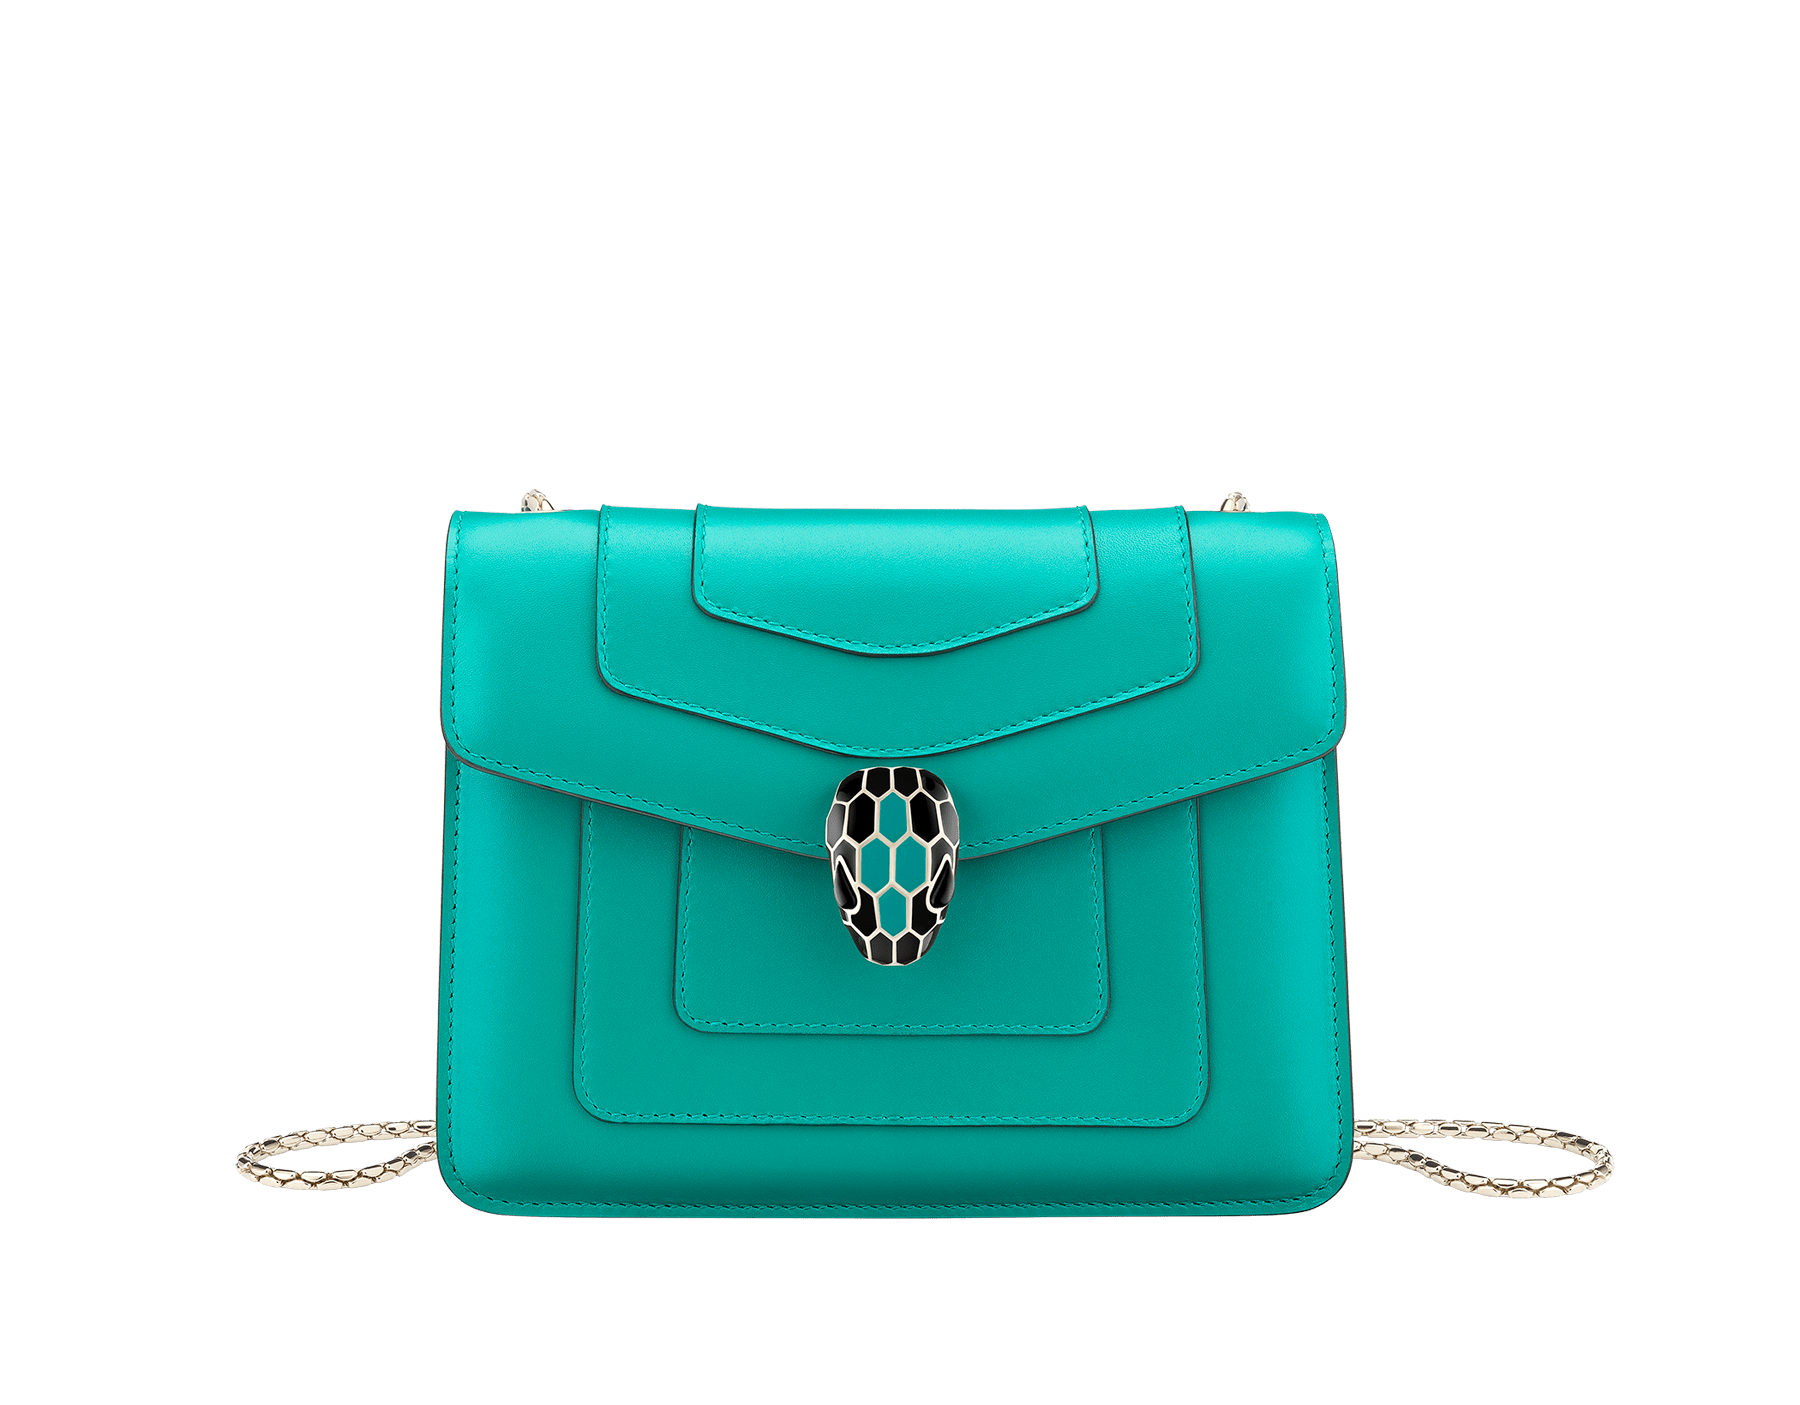 Serpenti Forever crossbody bag in tropical turquoise smooth calf leather body and sea star coral calf leather sides. Snakehead closure in light gold plated brass decorated with tropical turquoise and black enamel, and black onyx eyes. 287958 image 1